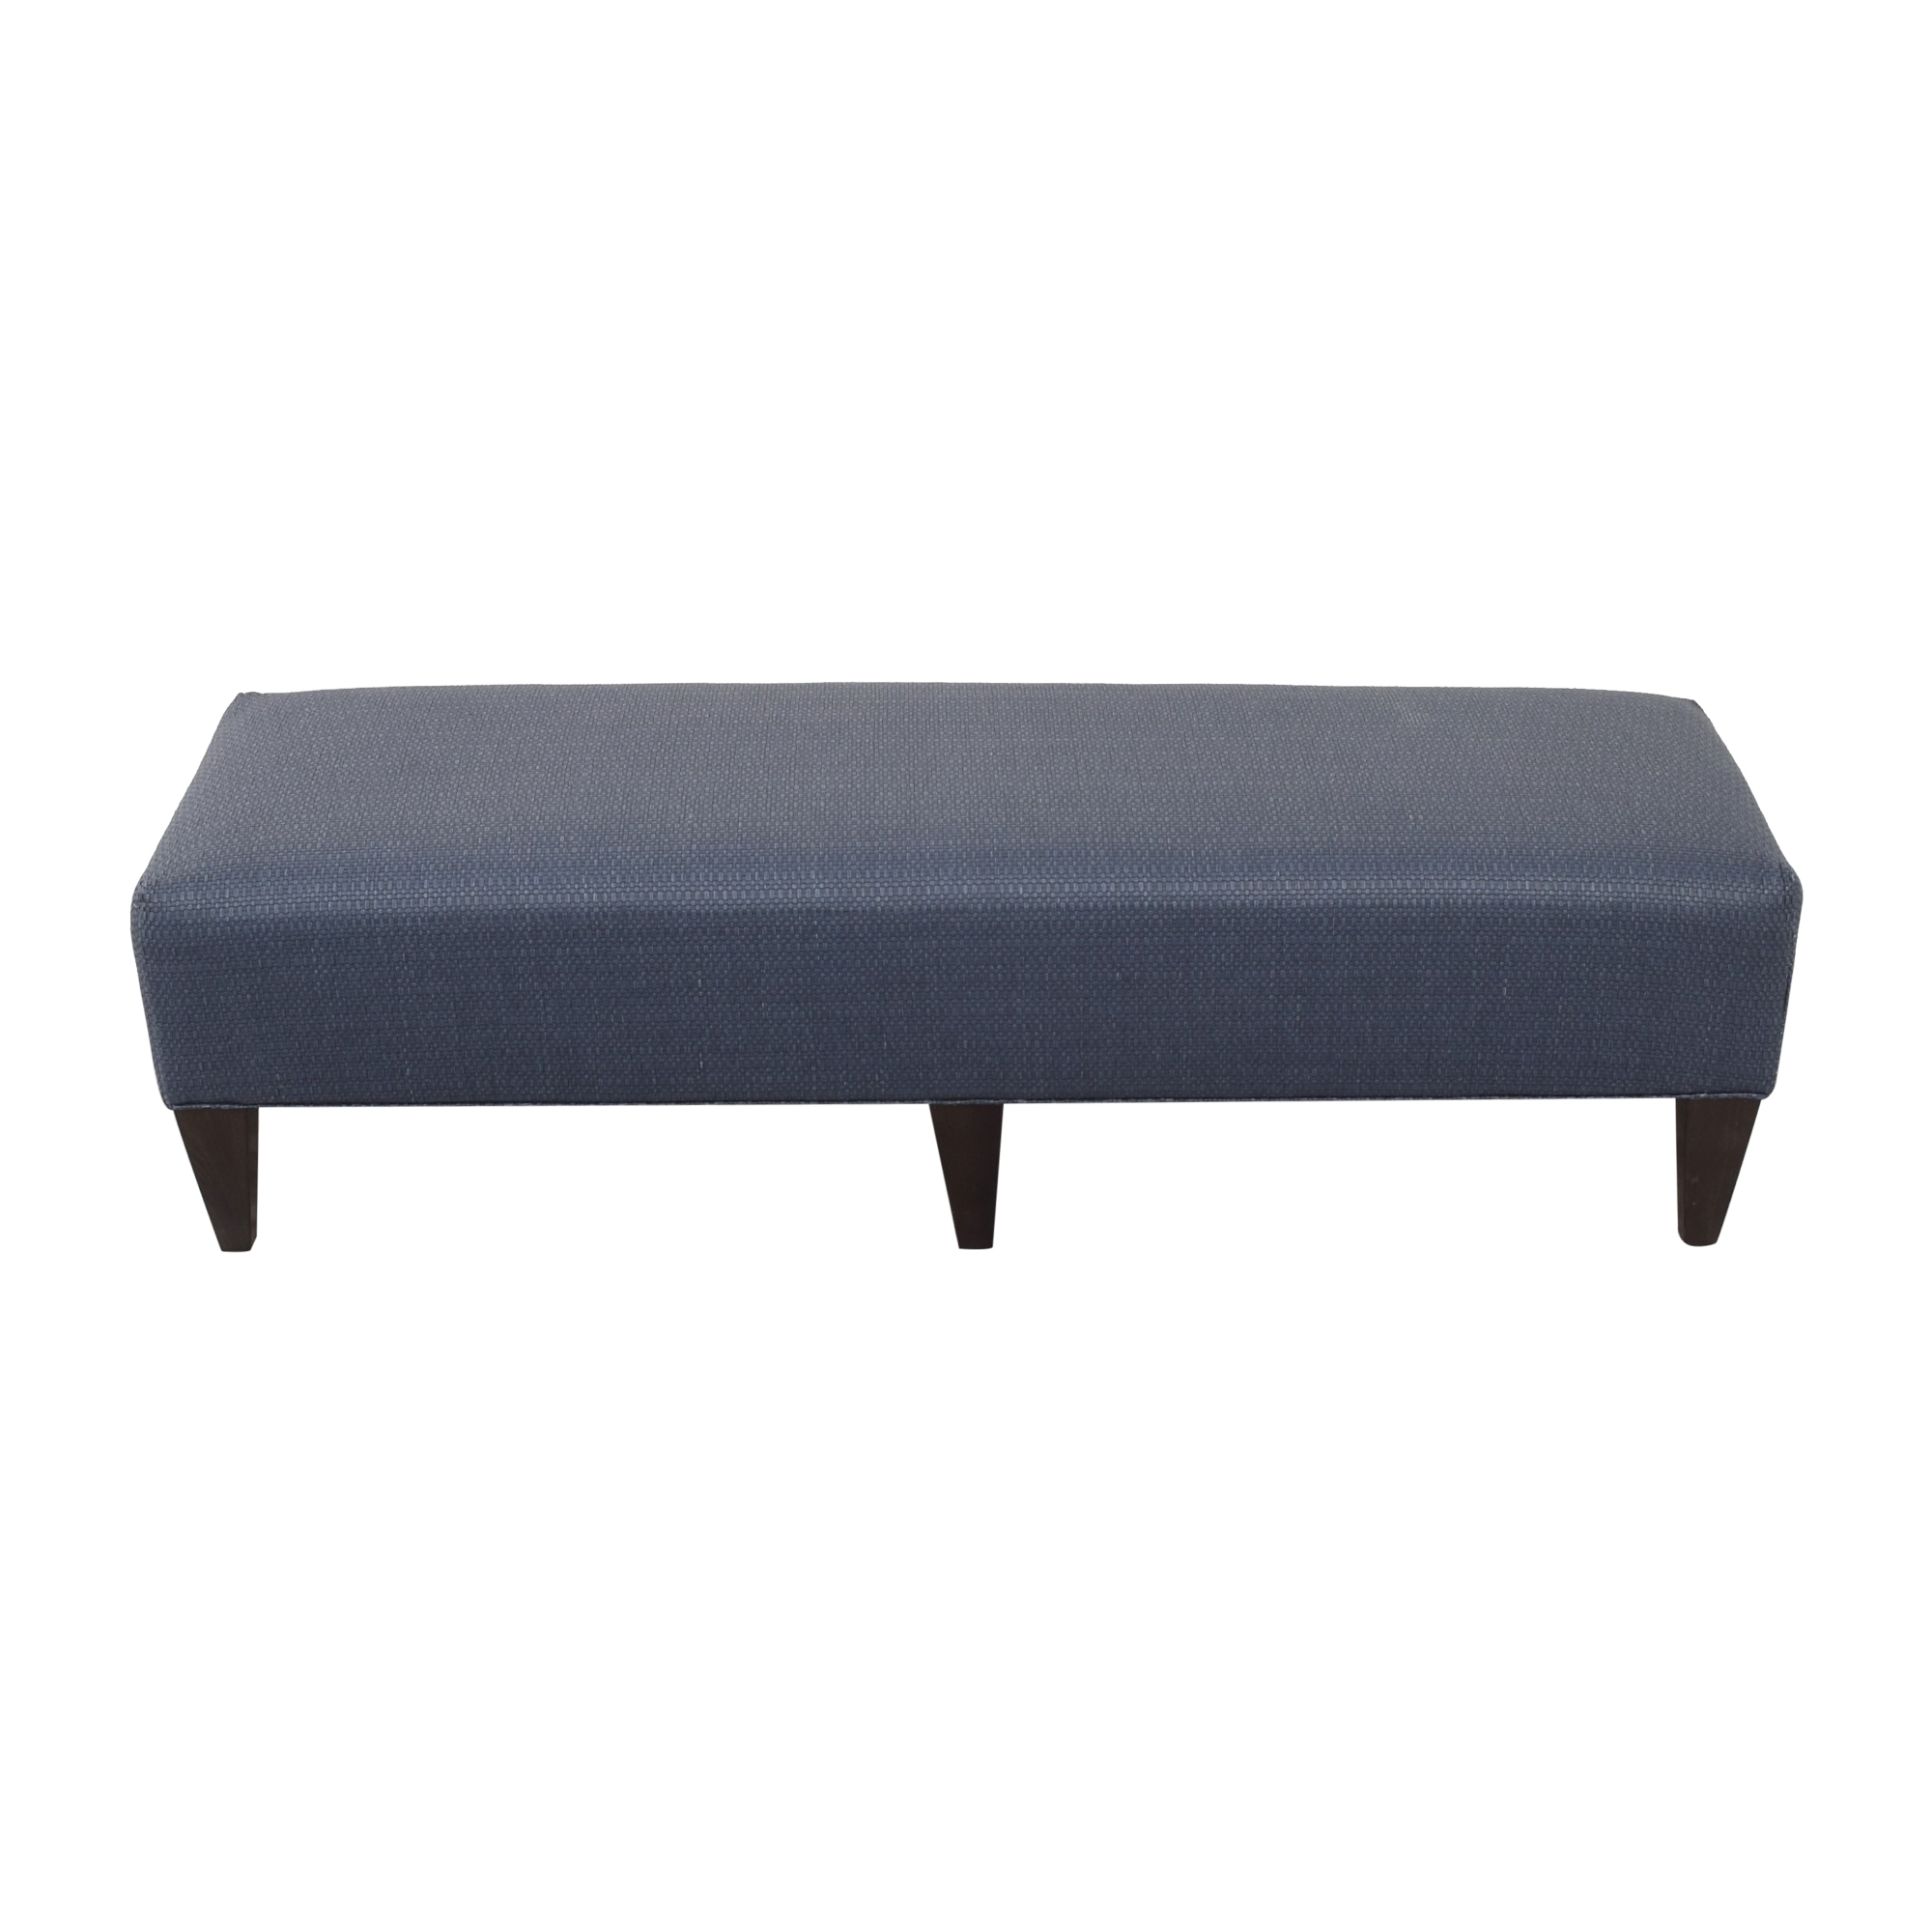 Portico Portico Cushioned Bench dimensions